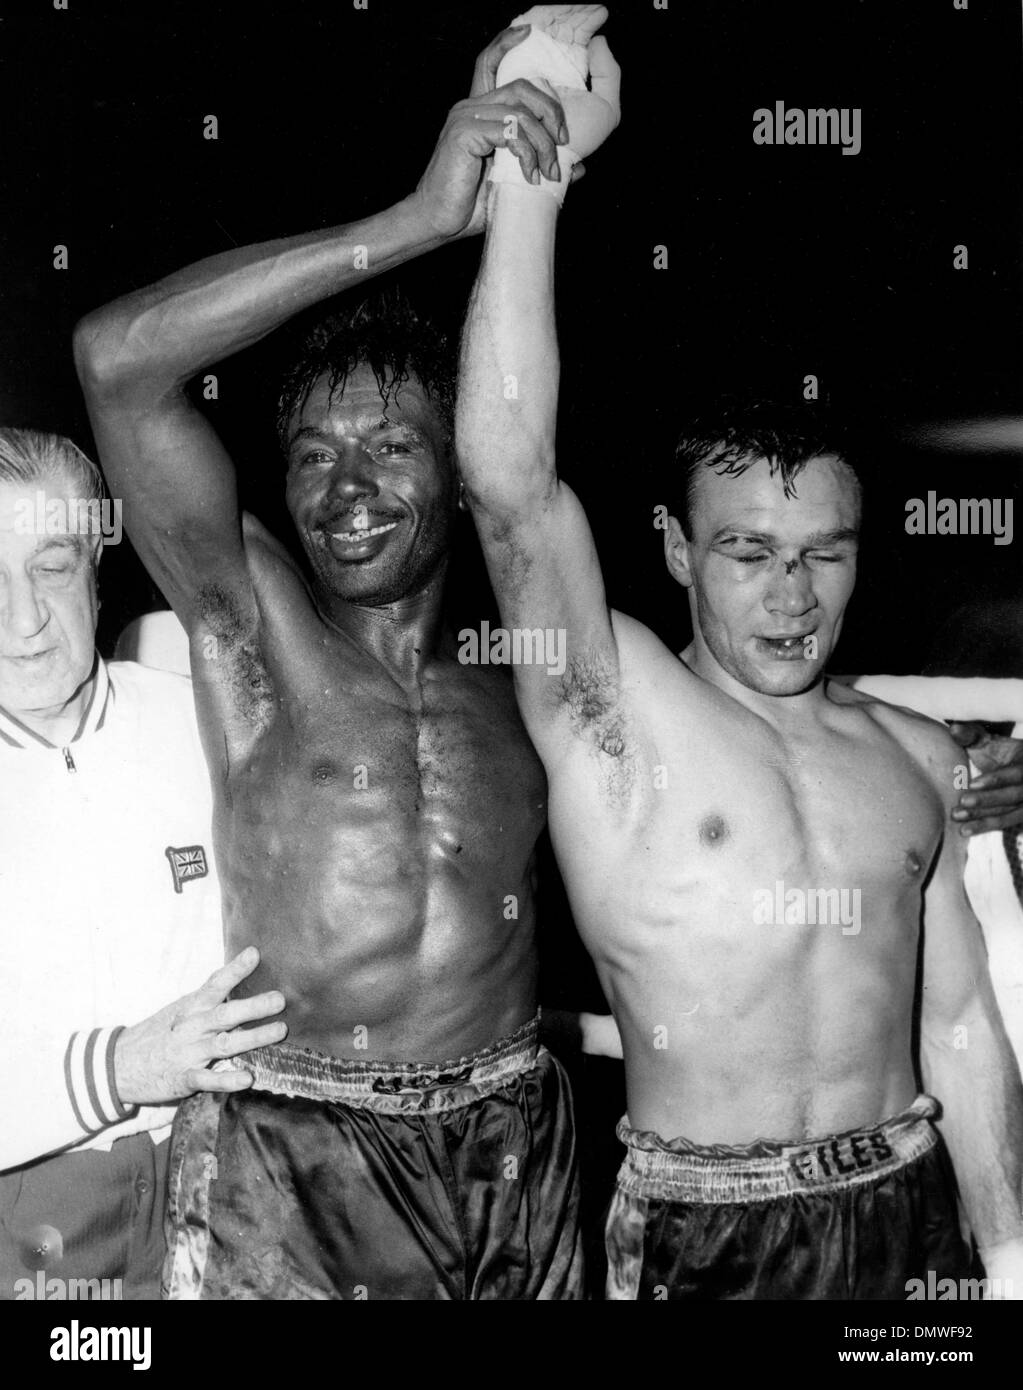 April 18, 1961 - London, England, U.K. - Boxer JOE BROWN is an African American world lightweight champion, he retained is title in a gruelling contest against DAVE CHARNLEY which he won on points at Earls Court. PICTURED: The two fighters after the match. (Credit Image: © KEYSTONE Pictures USA/ZUMAPRESS.com) - Stock Image